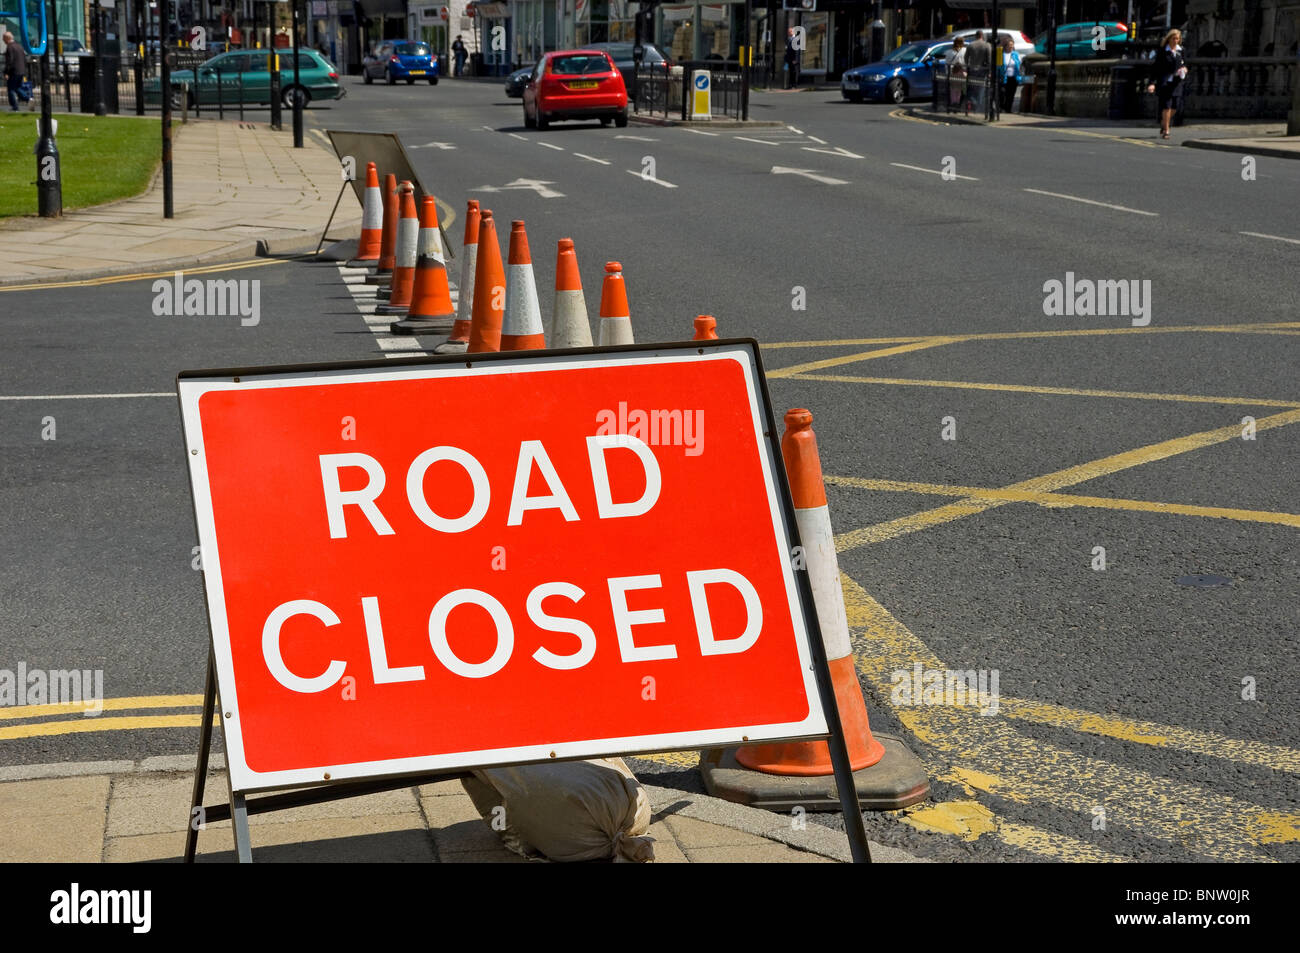 Road closed sign and Traffic Cones Harrogate North Yorkshire England UK United Kingdom GB Great Britain - Stock Image